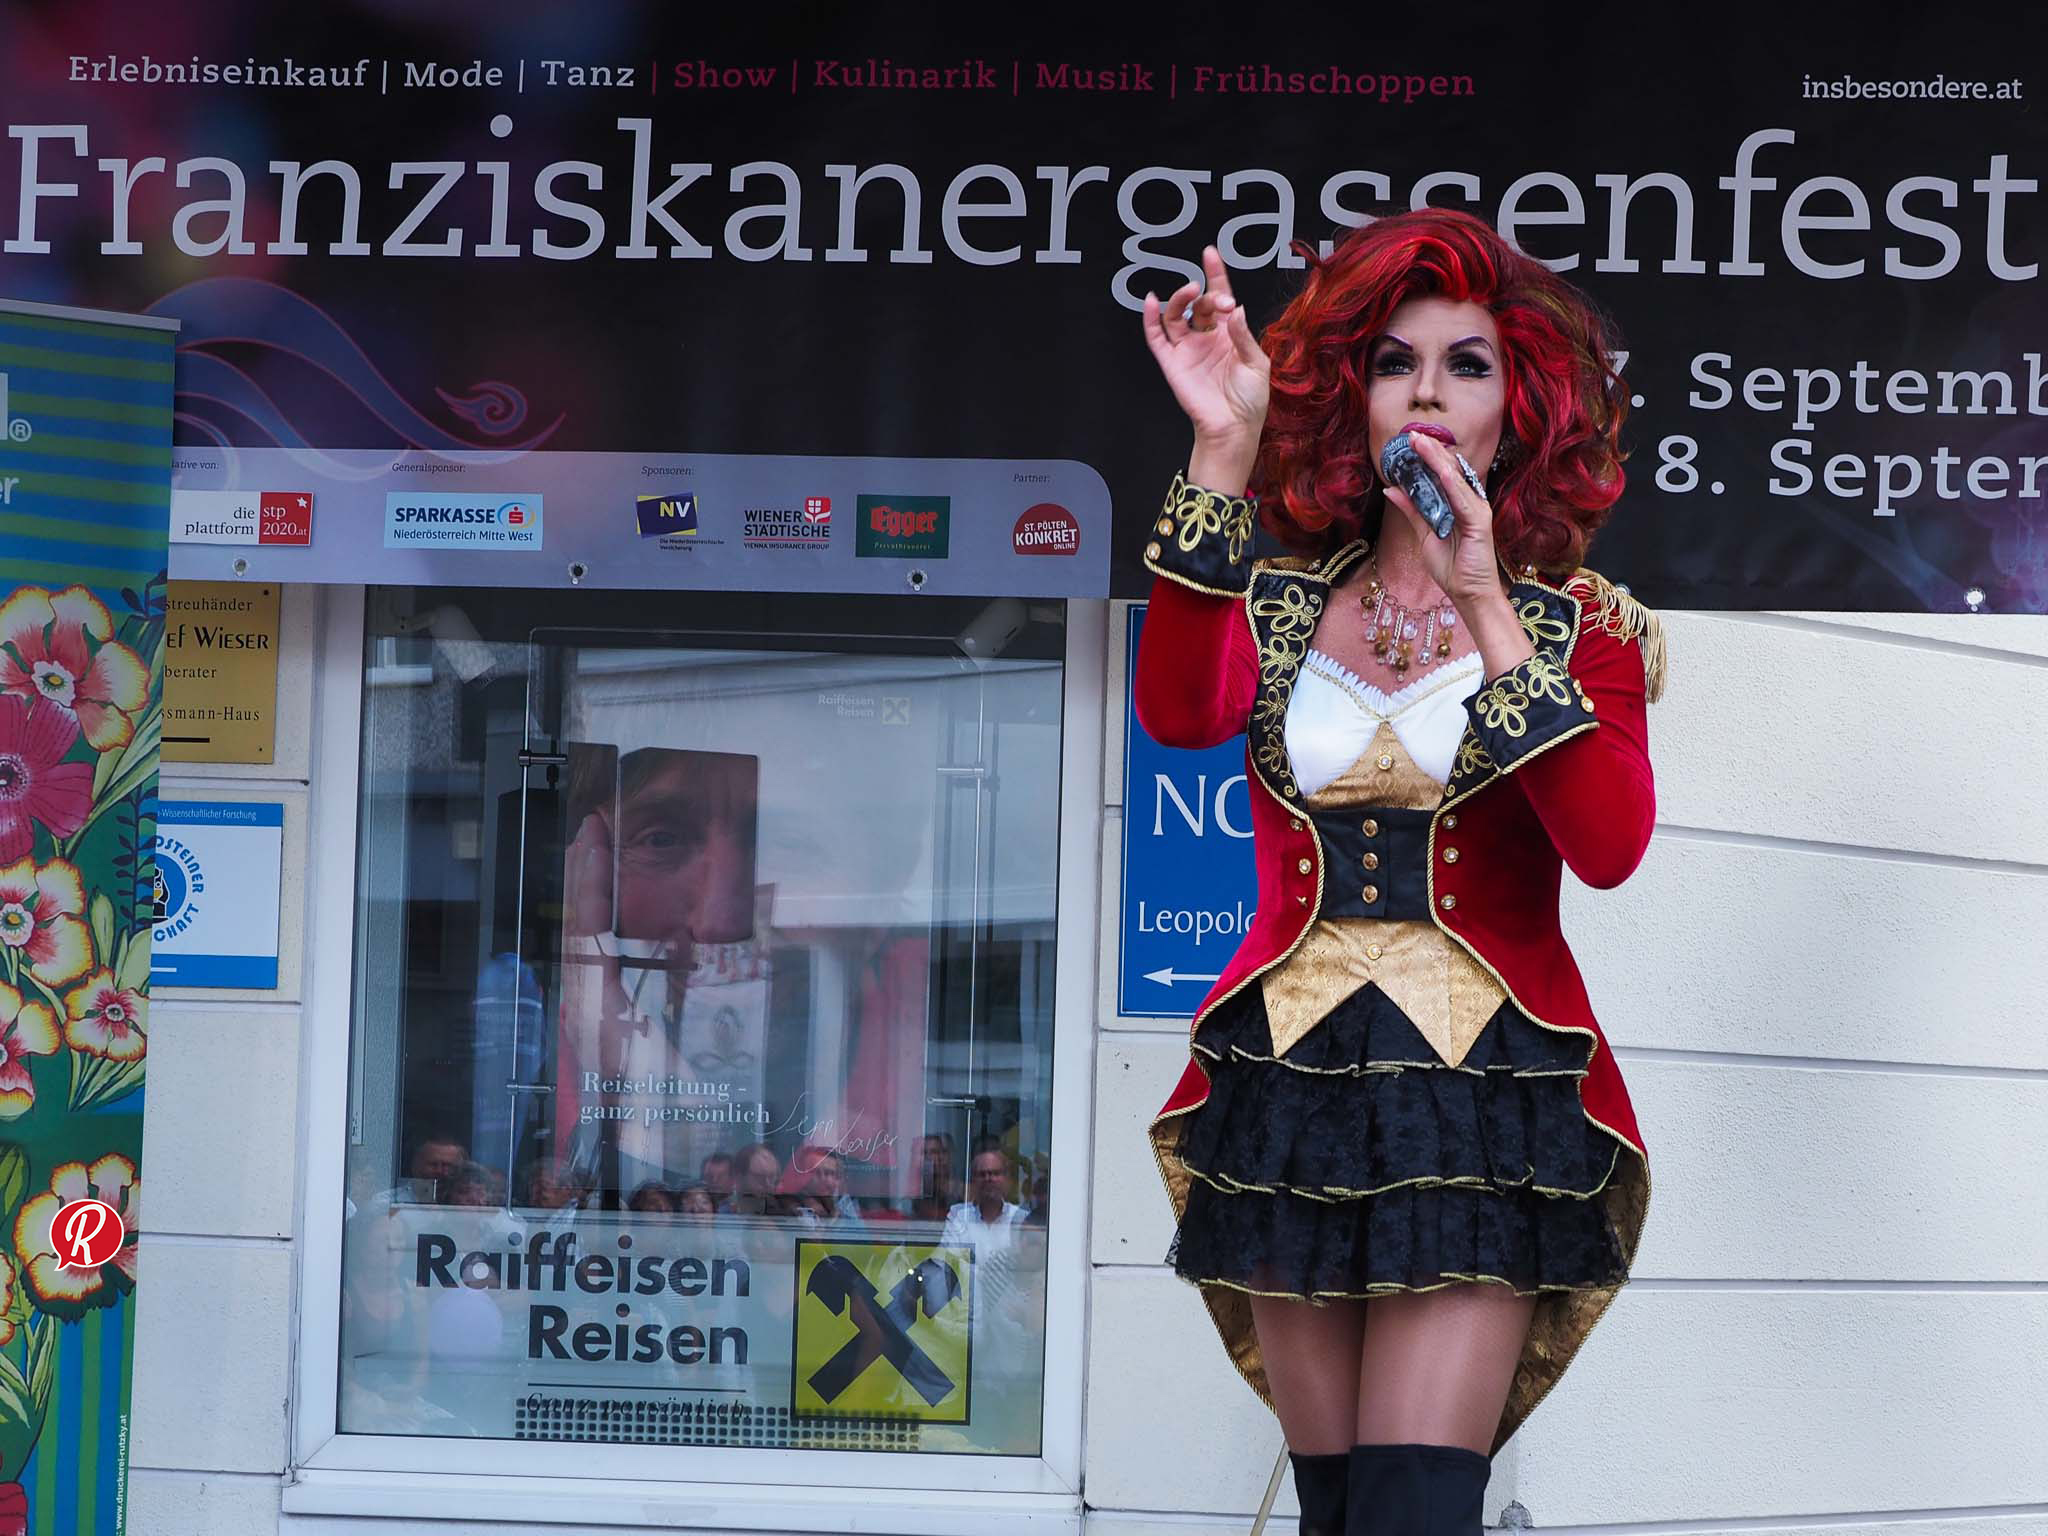 Franziskanergassenfest am 7. & 8. September